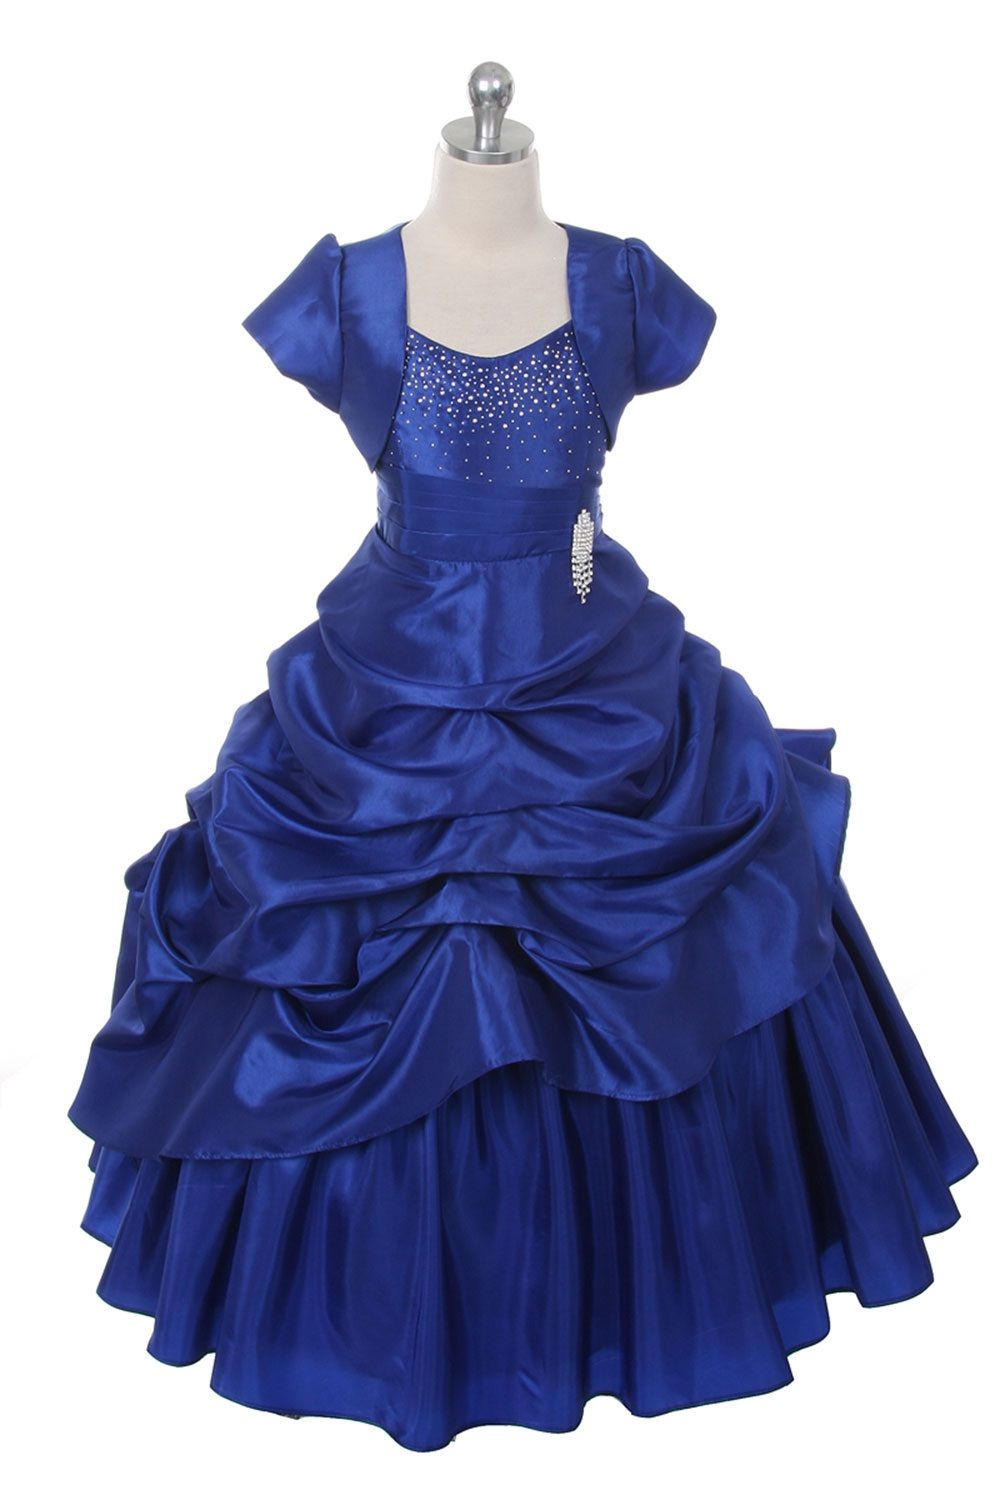 7569aa43678 Clearance Aqua Extravagent Taffeta Pick-Up Dress with Marching ...